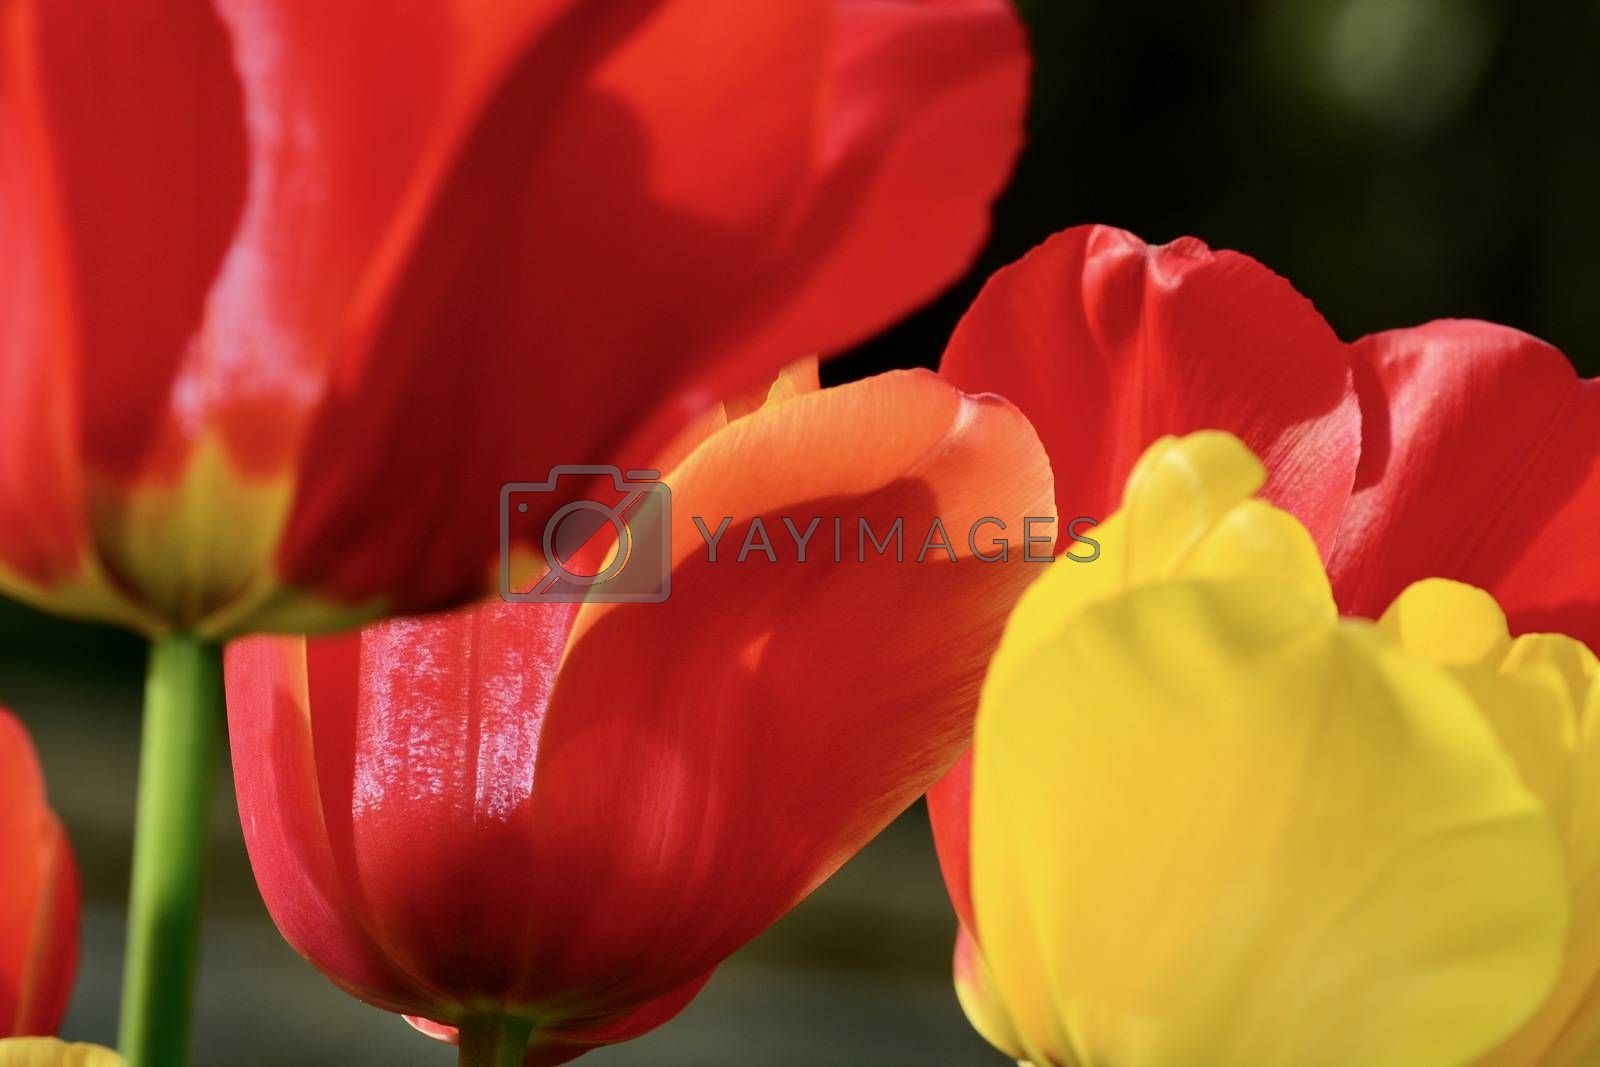 Close-up of a flower, beautiful flowers, being close to nature, bringing nature close to you, red and yellow tulip flowers